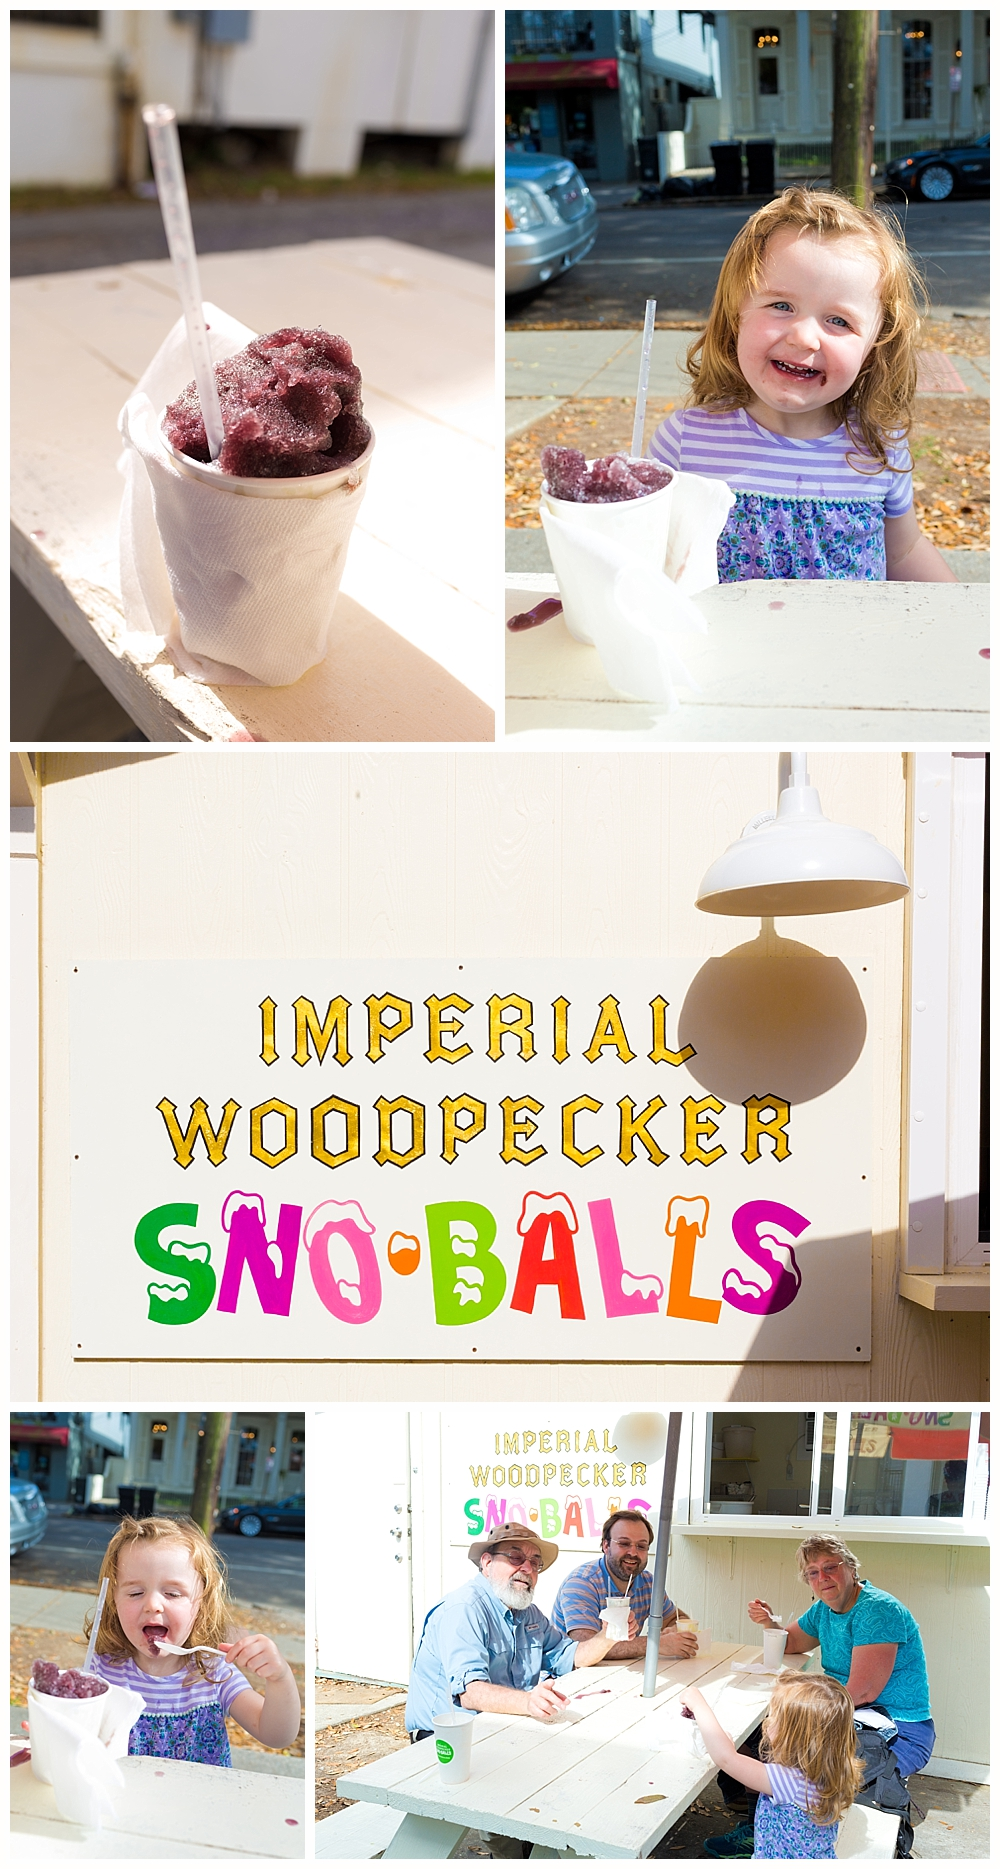 Imperial Woodpecker Sno-balls in New Orleans